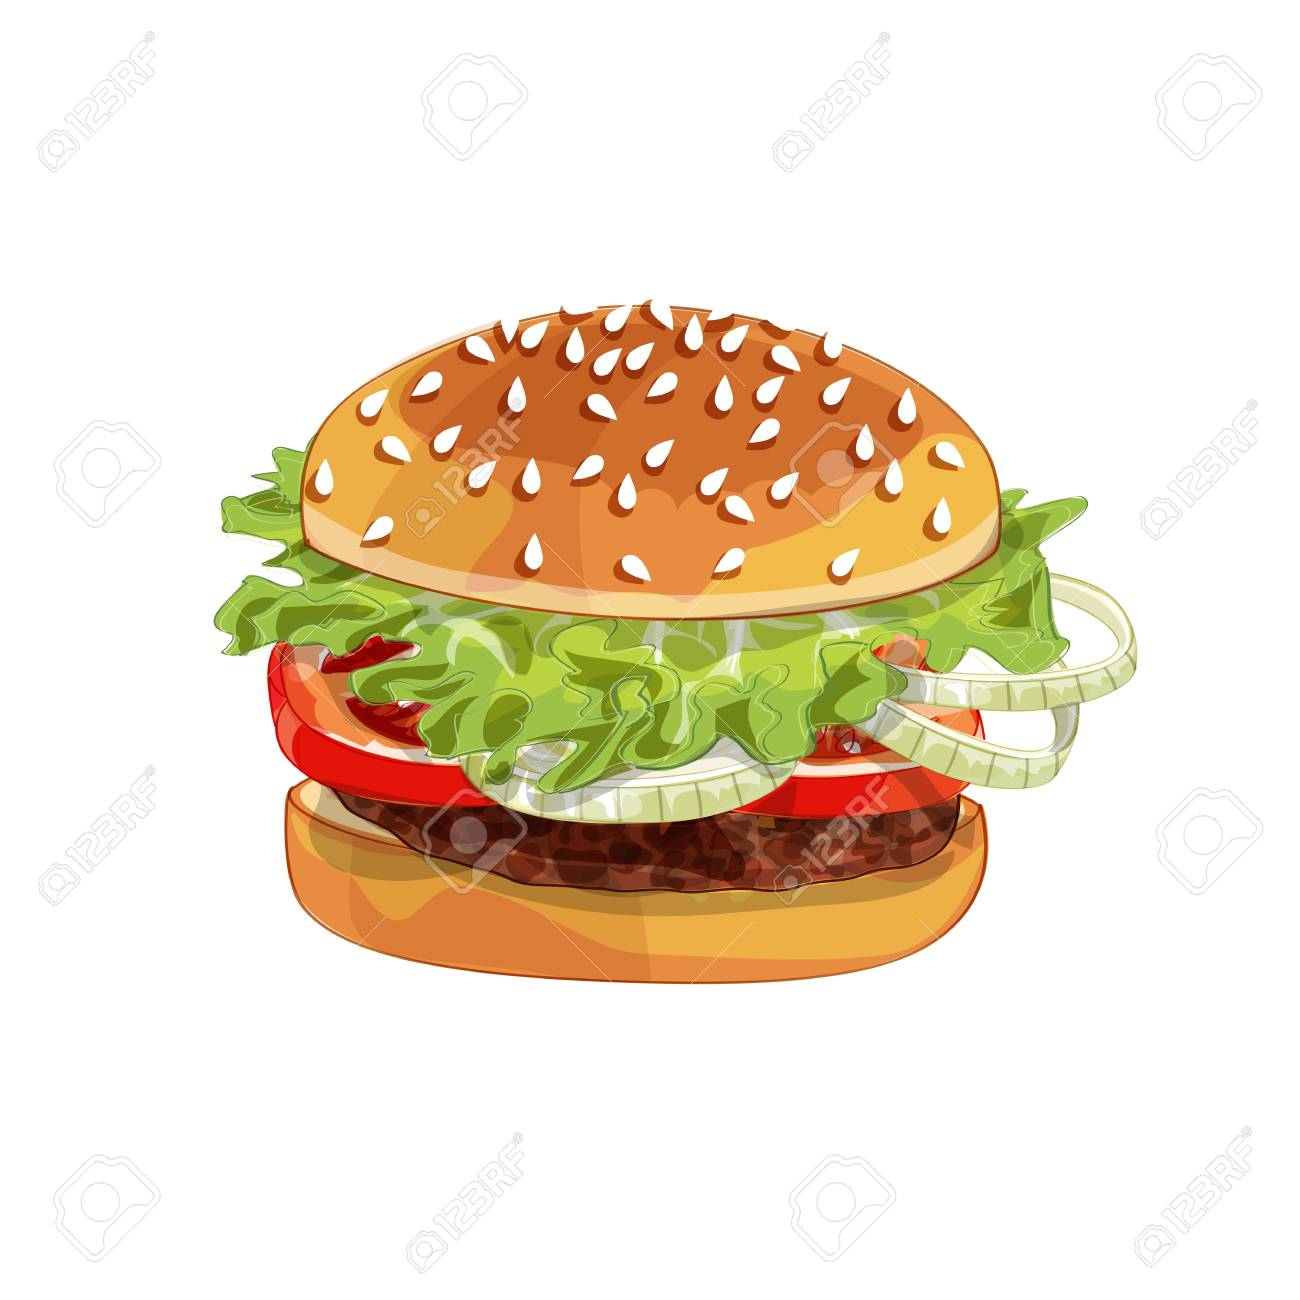 Vector realistic illustration pattern of burger, delicious hamburger with ingredients lettuce, onion, patty, tomato, cheese, bun isolated on white background - 123124845